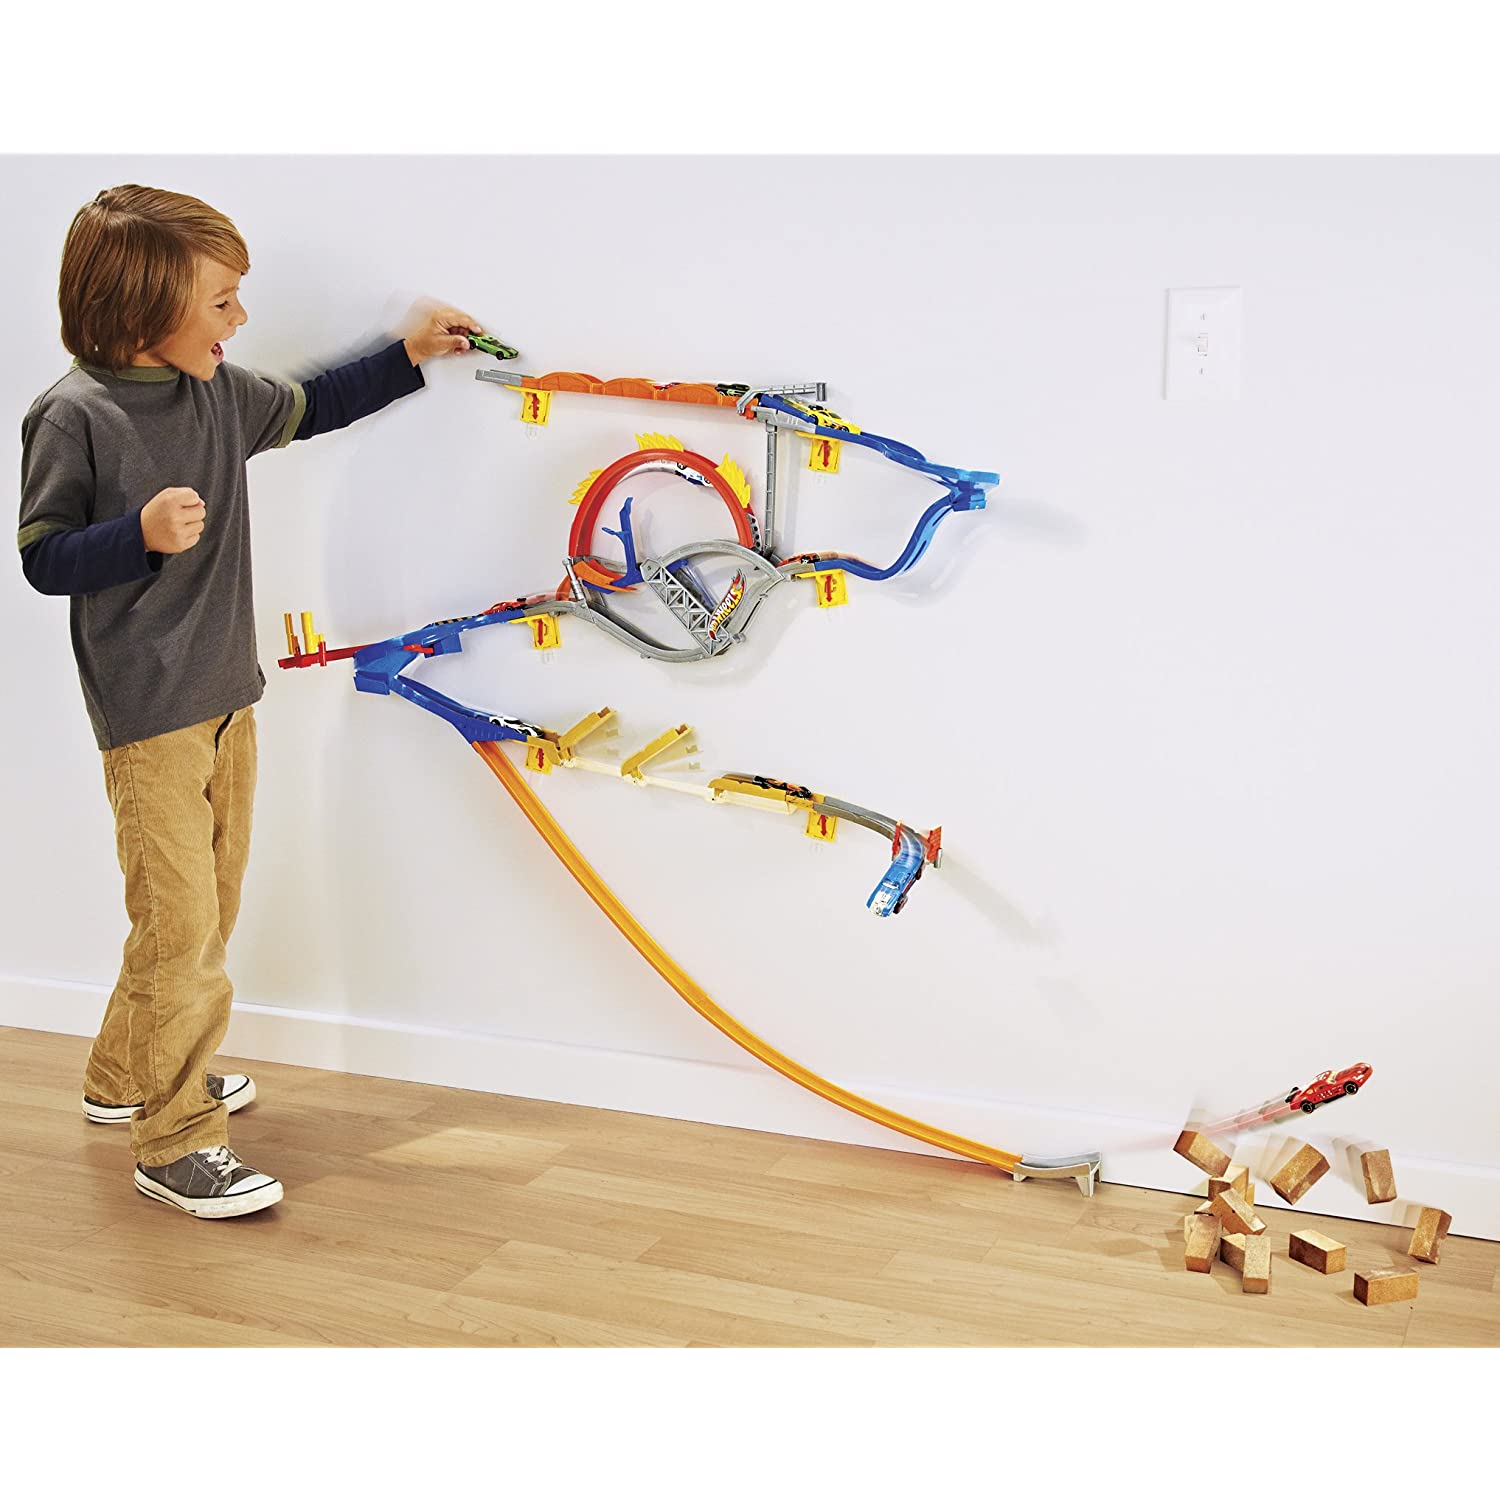 Hot Wheels Wall Tracks Review Toy Buzz